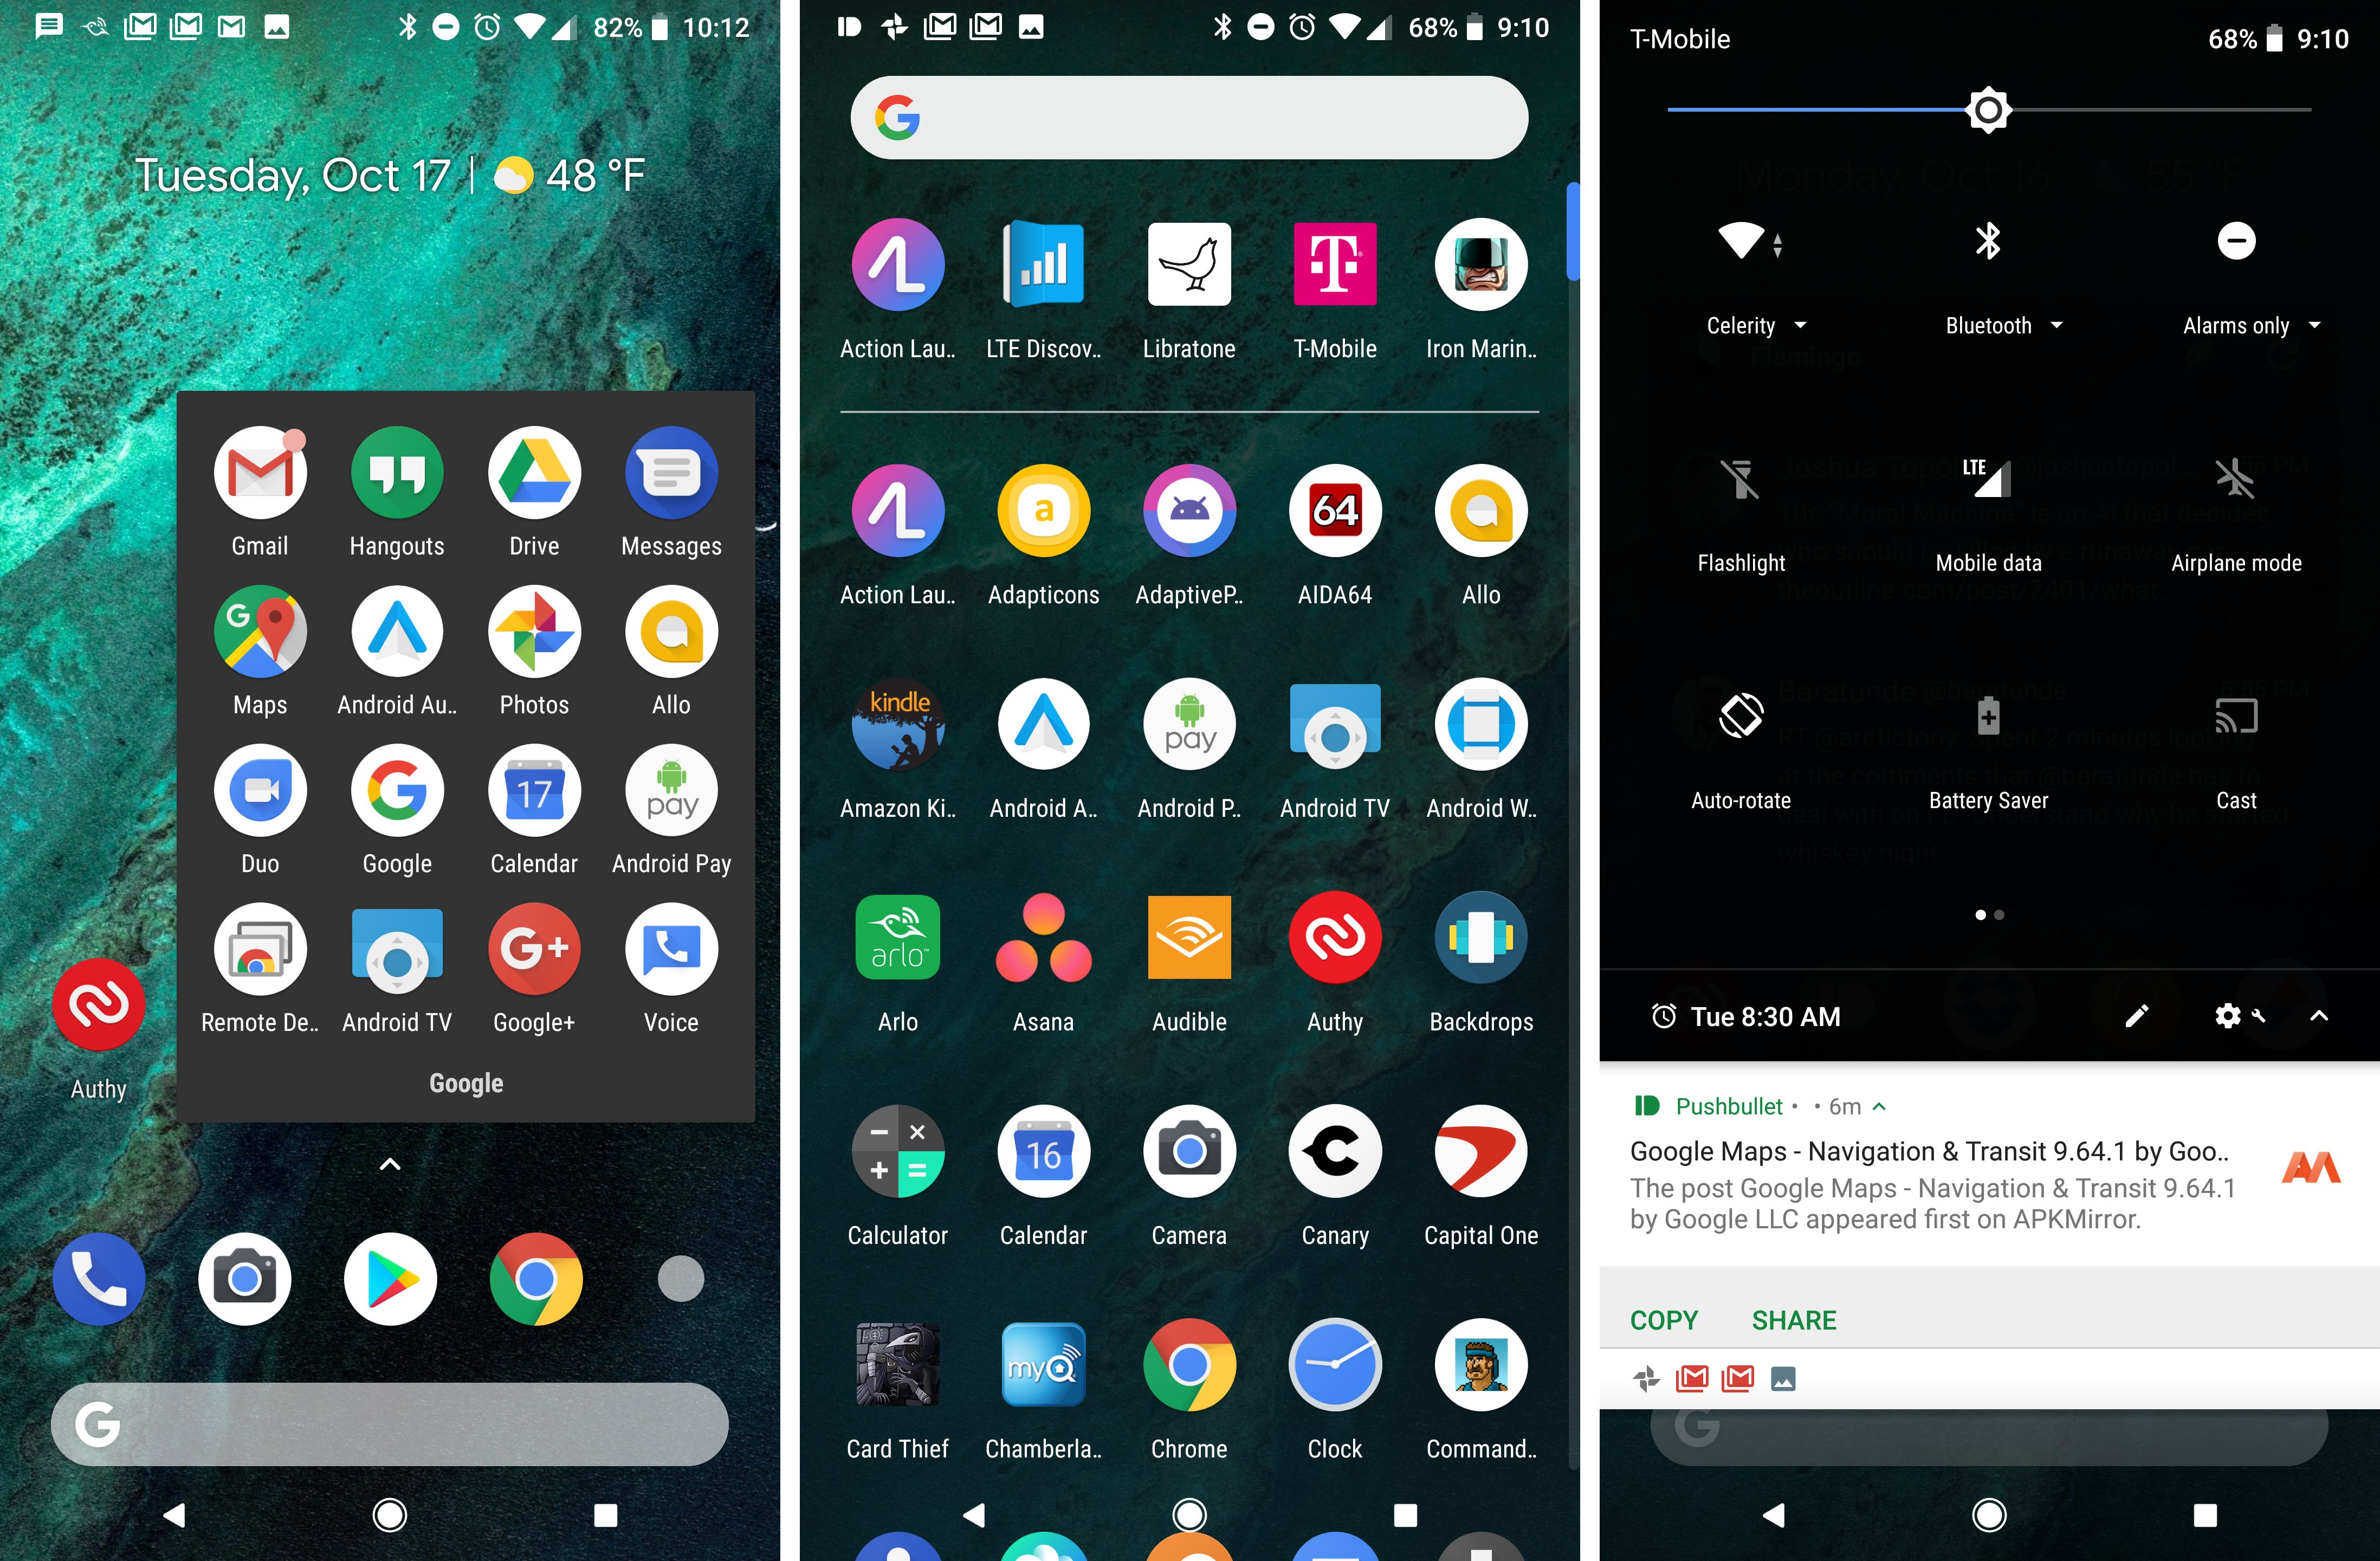 The Pixel Launcher On Pixel 2 Has Automatic Dark And Light Themes